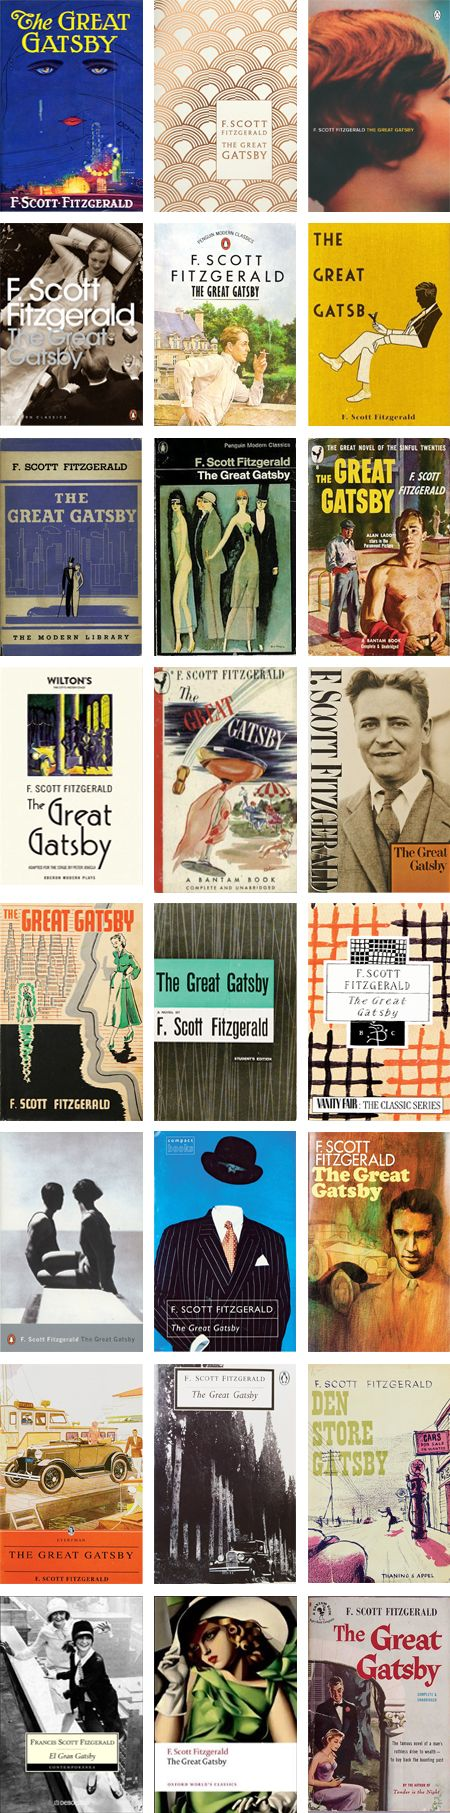 On April 10th, The Great Gatsby by F. Scott Fitzgerald, turned 87 years old. The original cover designed by Francis Coradal-Cugat, depicts a disembodied face floating in the night sky (top left). It is one of the prominent images in literature, but that hasn't kept book cover designers from trying to outdo the classic. Below, check out just some…